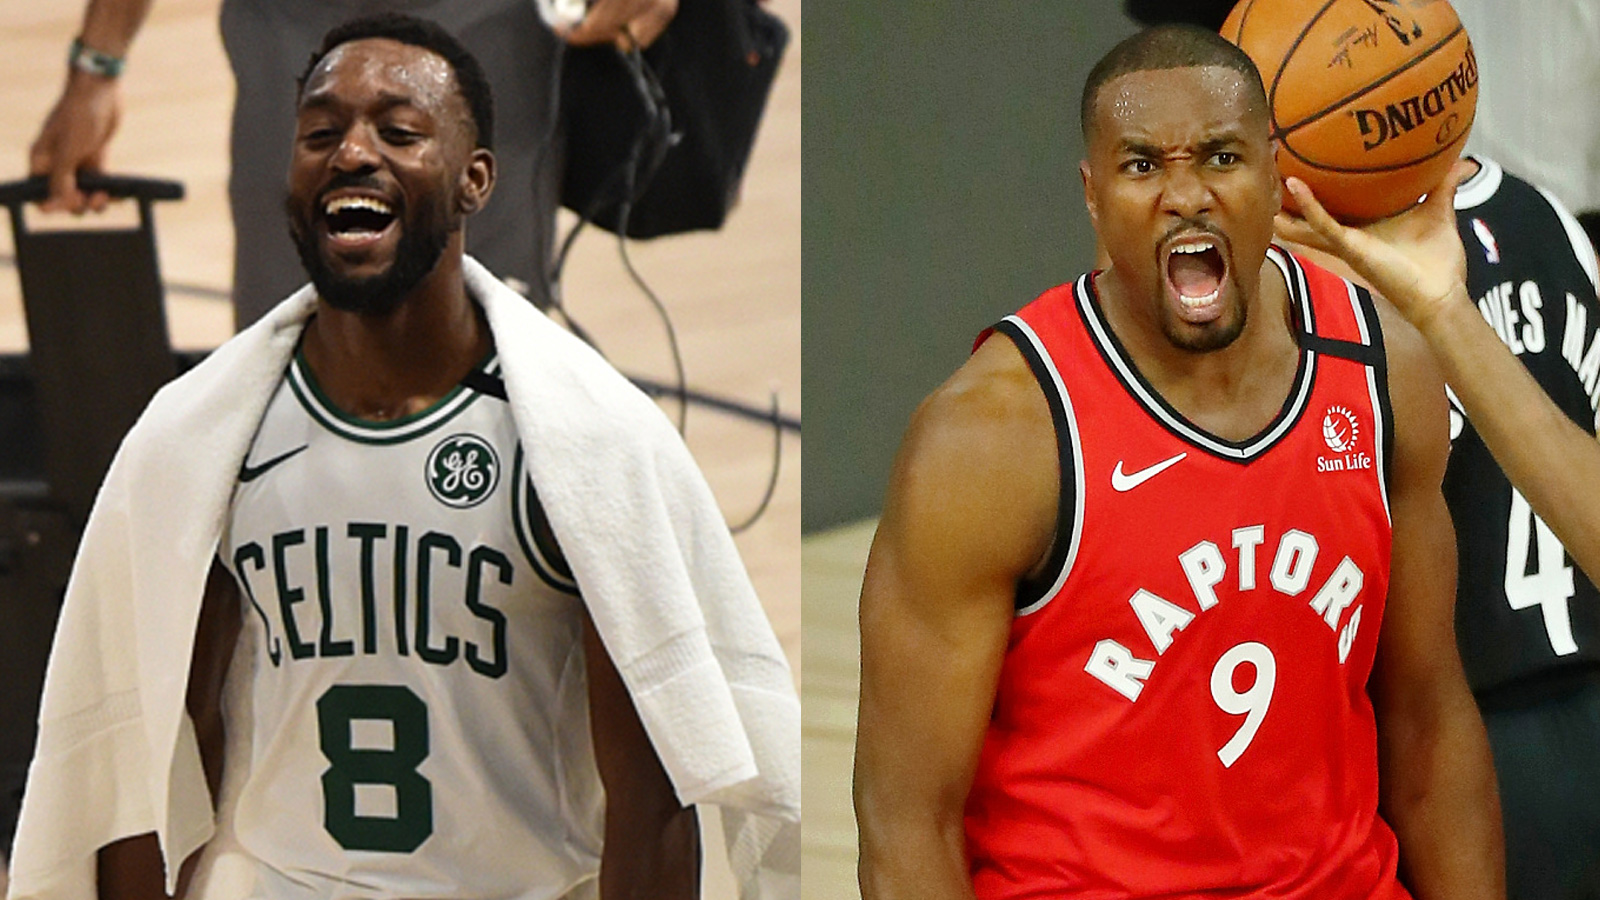 Nba Highlights On August 21 Raptors Celtics One Win From Semifinals Cgtn